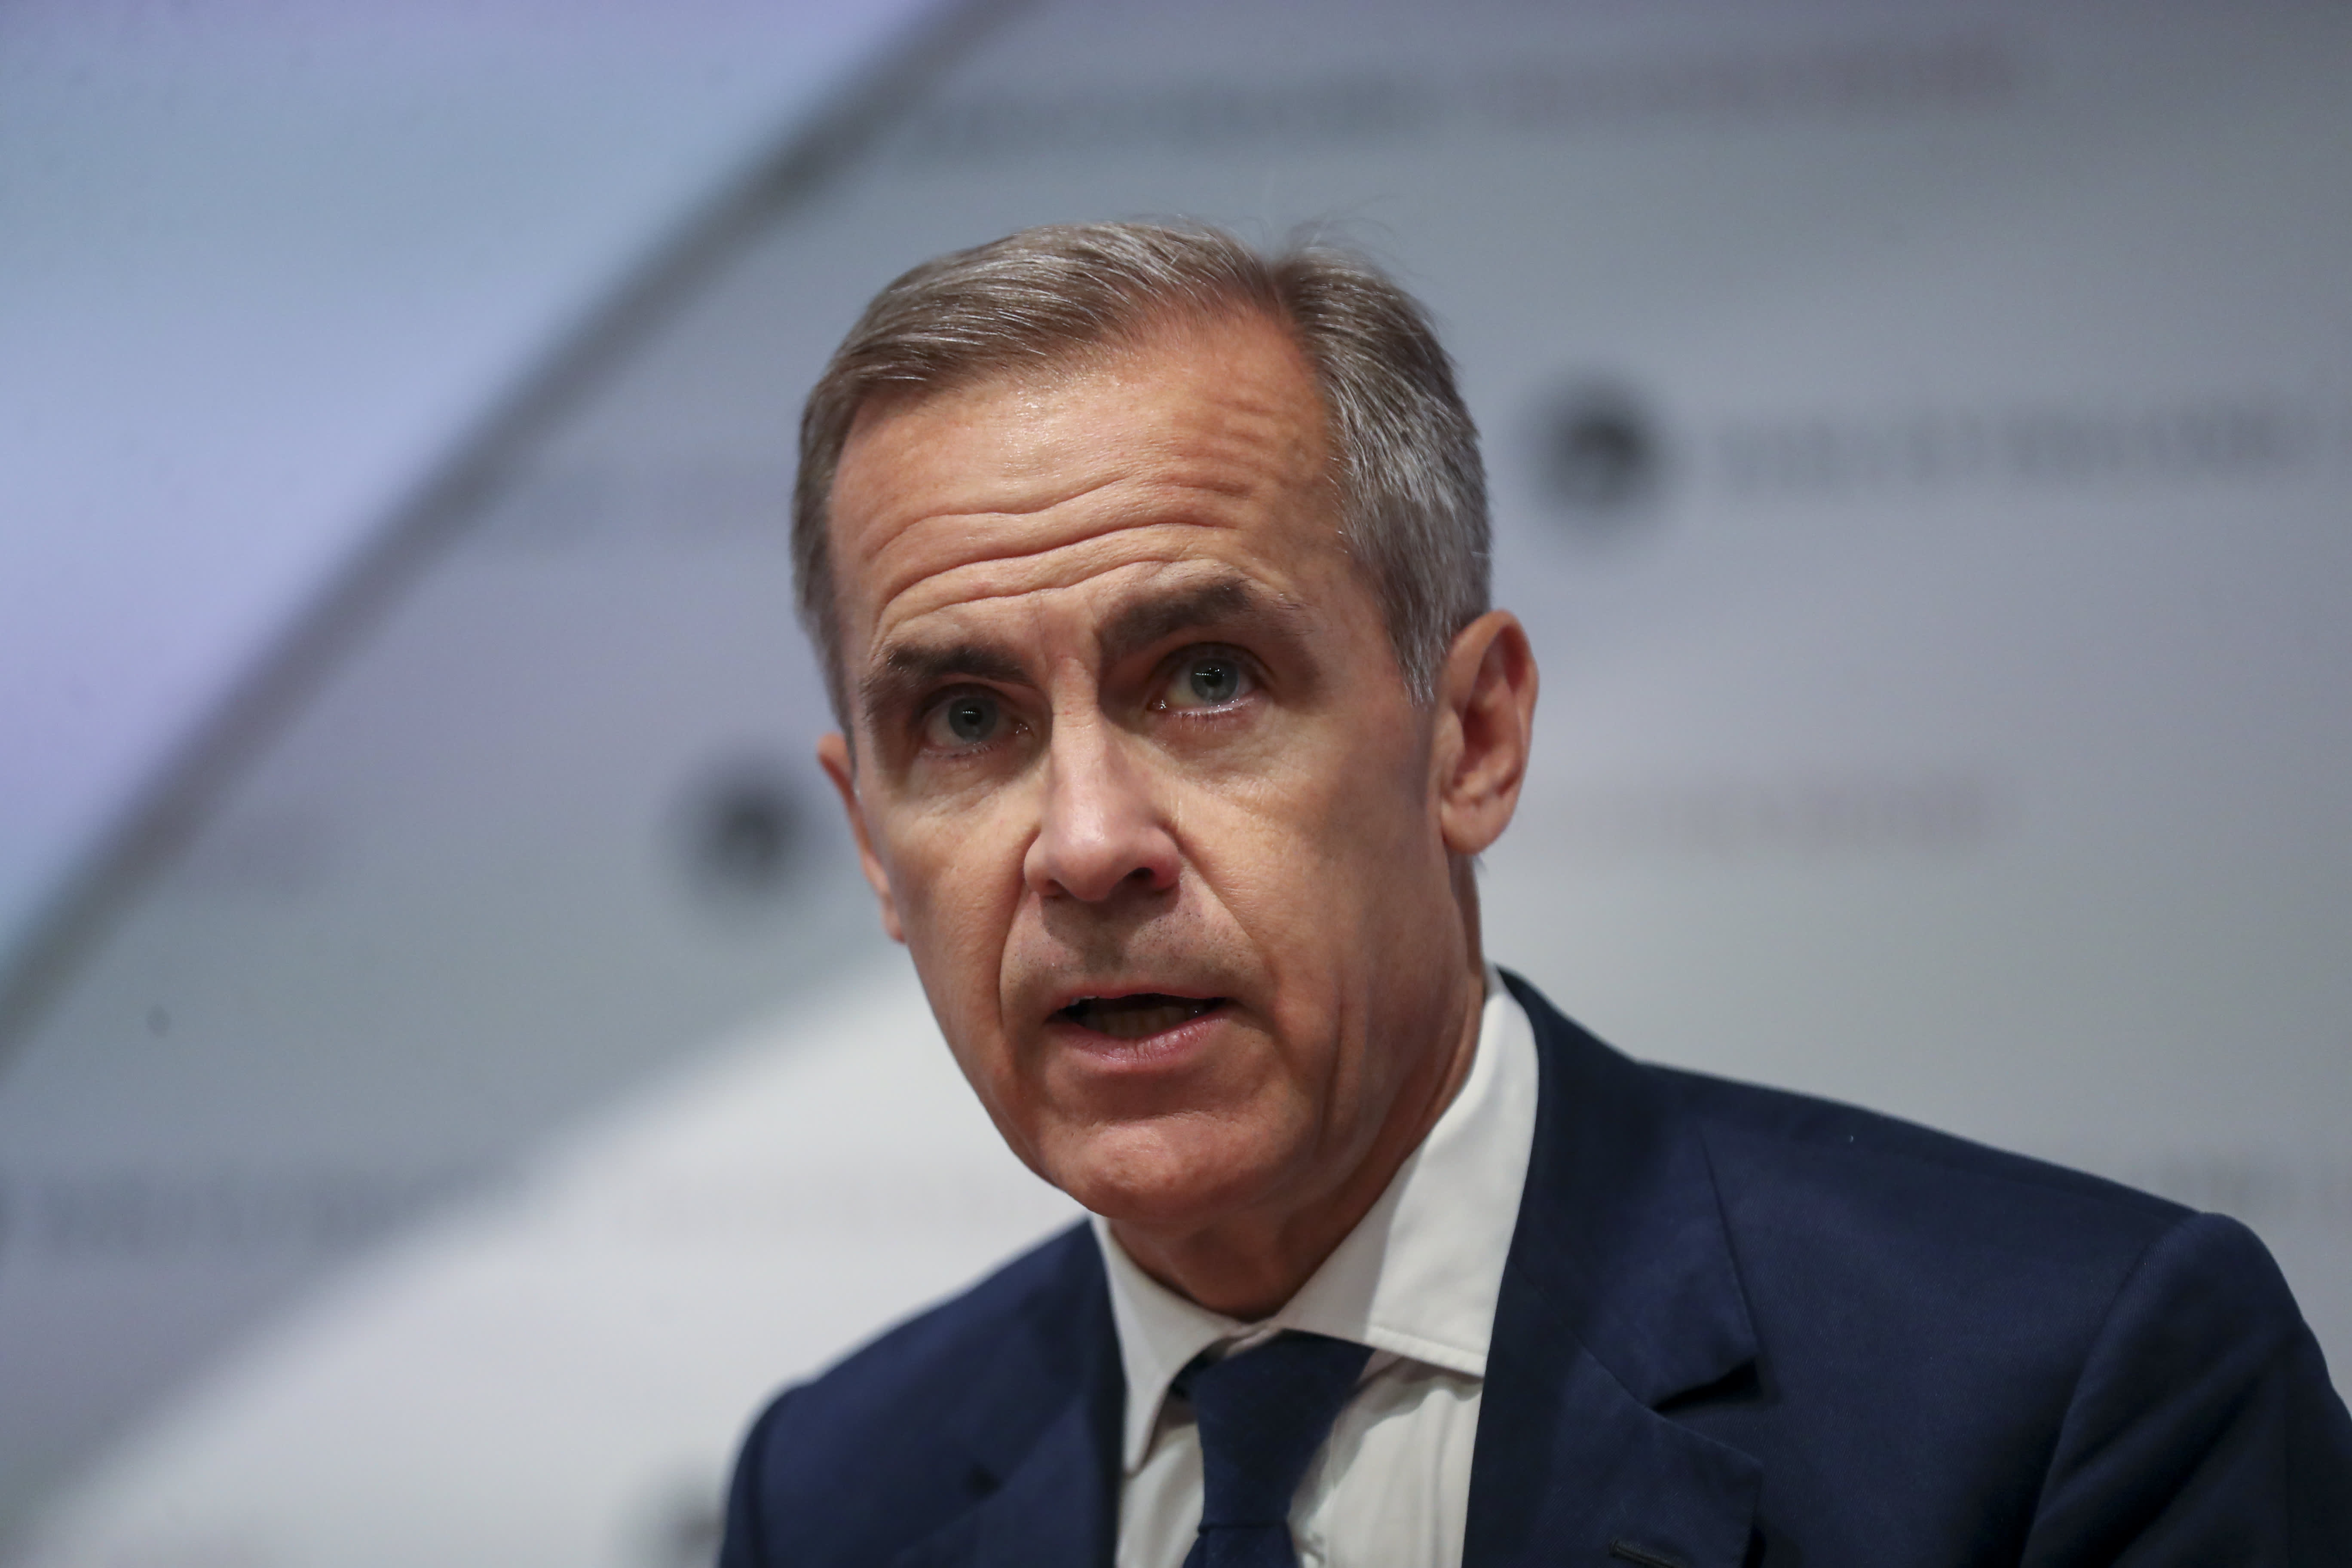 Bank of England Governor Mark Carney says central banks won't be left behind by fintech